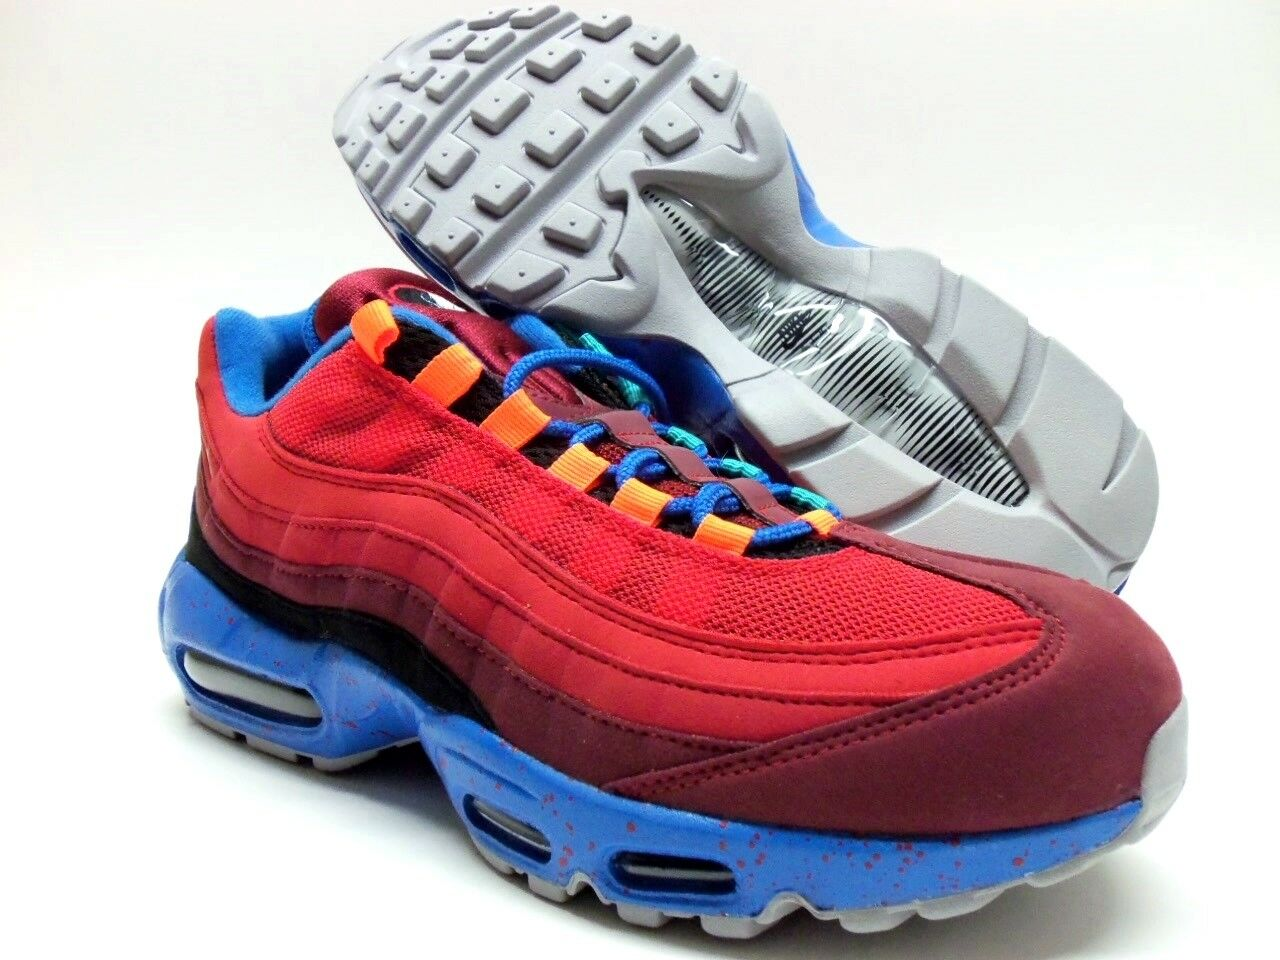 NIKE AIR MAX 95 ID GYM RED SOLAR RED-ROYAL blueE SIZE WOMEN'S 10 [818593-996]